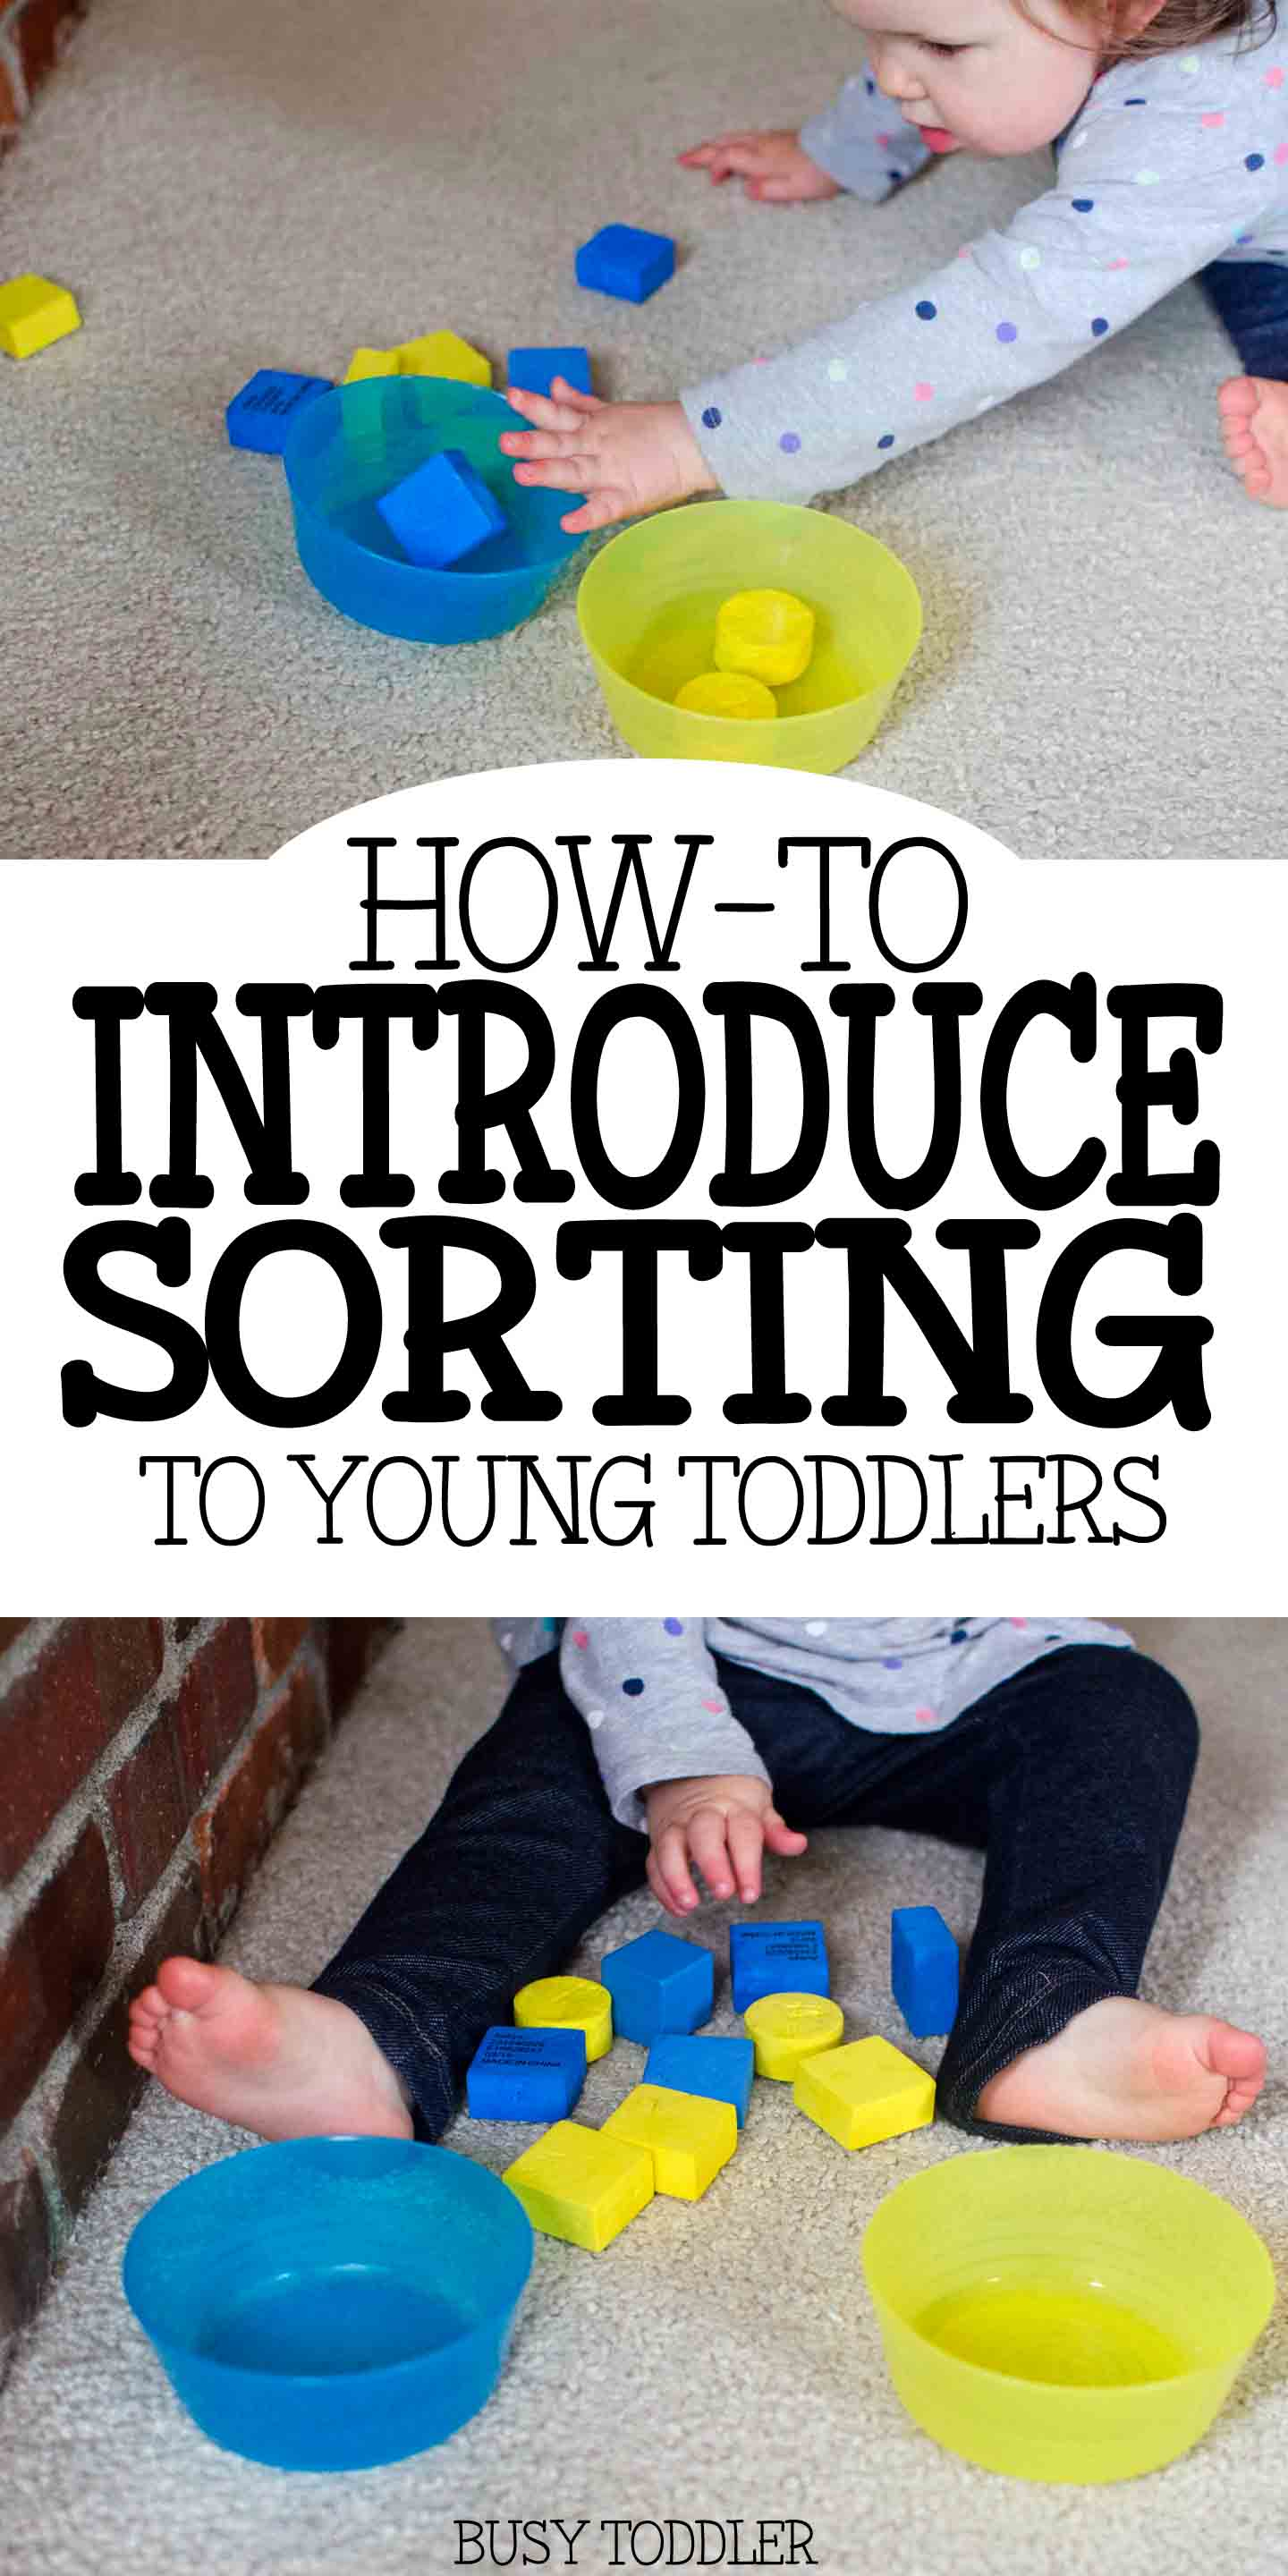 Introducing Sorting Teaching Young Toddlers